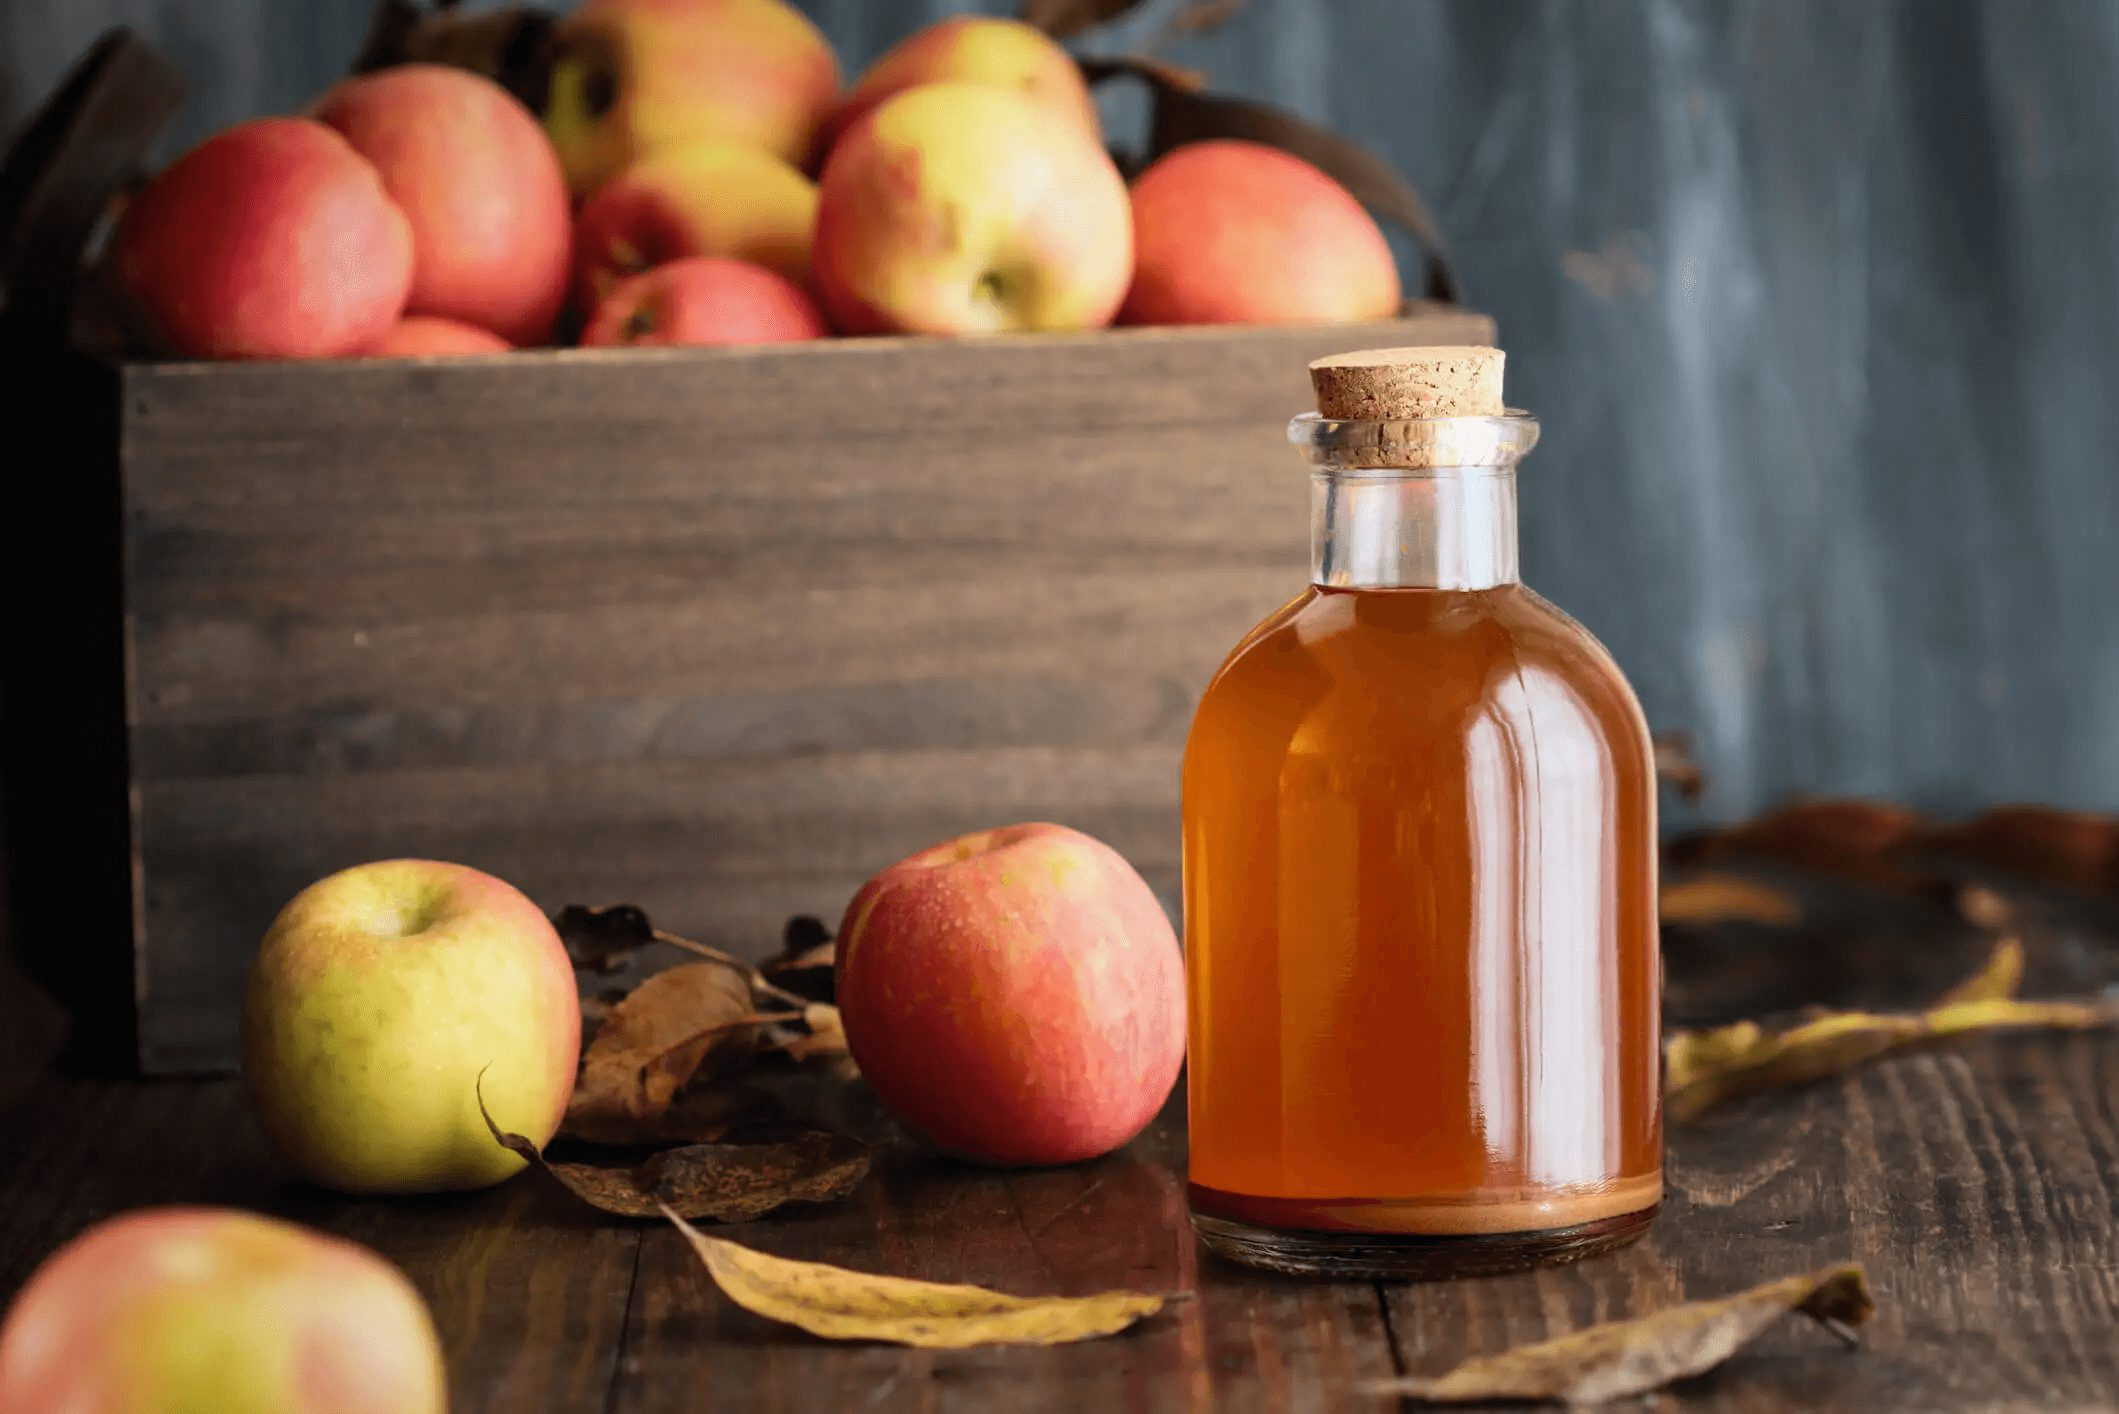 apple cider vinegar and crate of apples